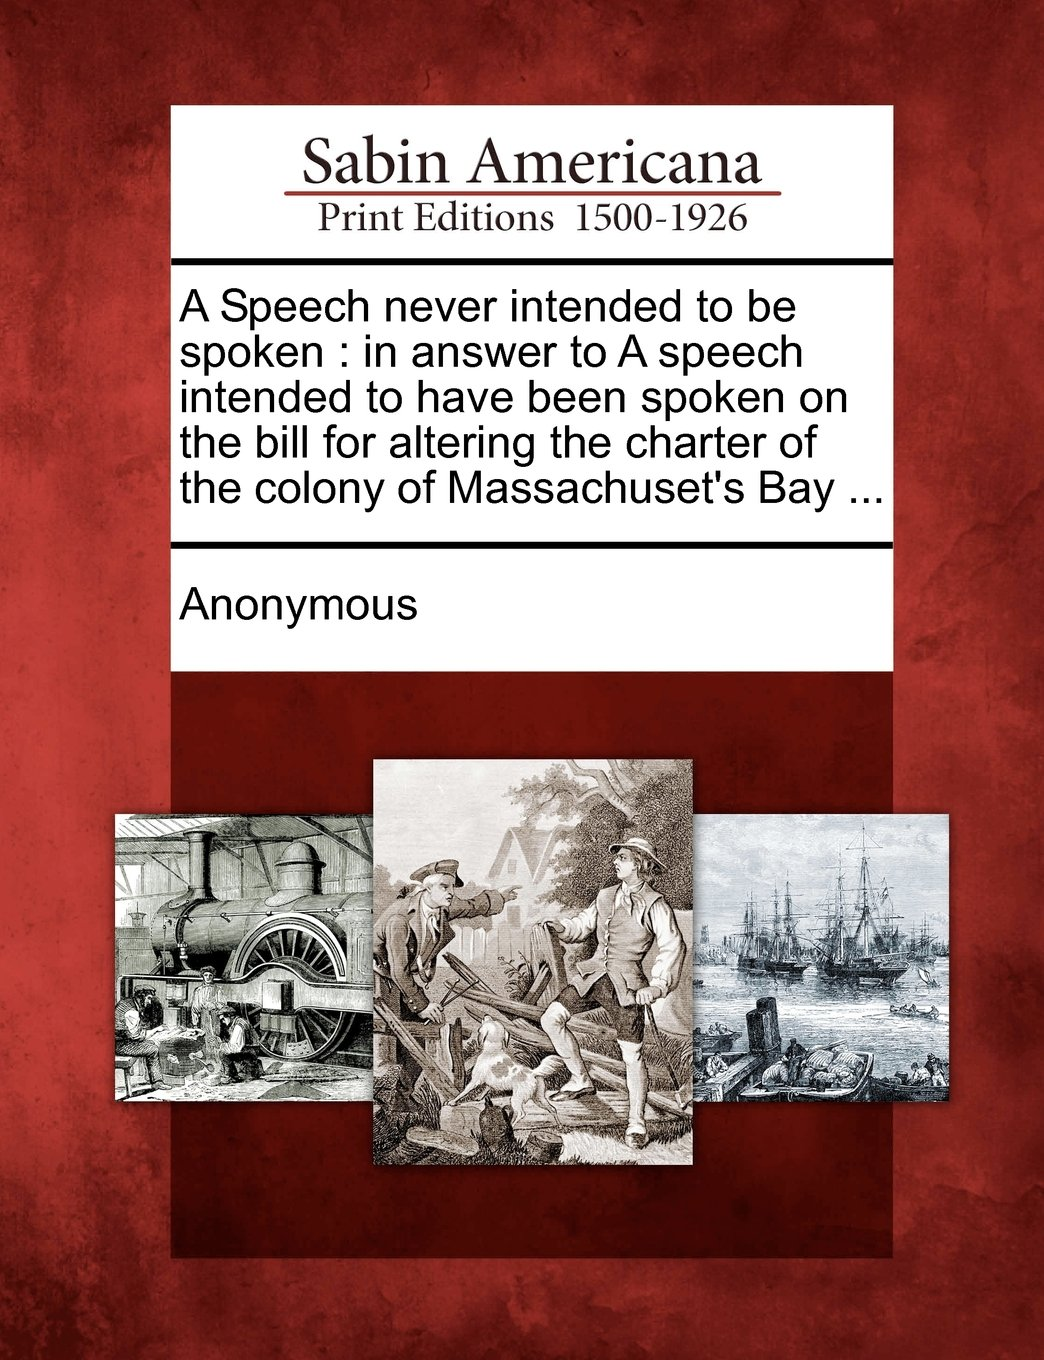 A Speech never intended to be spoken: in answer to A speech intended to have been spoken on the bill for altering the charter of the colony of Massachuset's Bay ... ebook